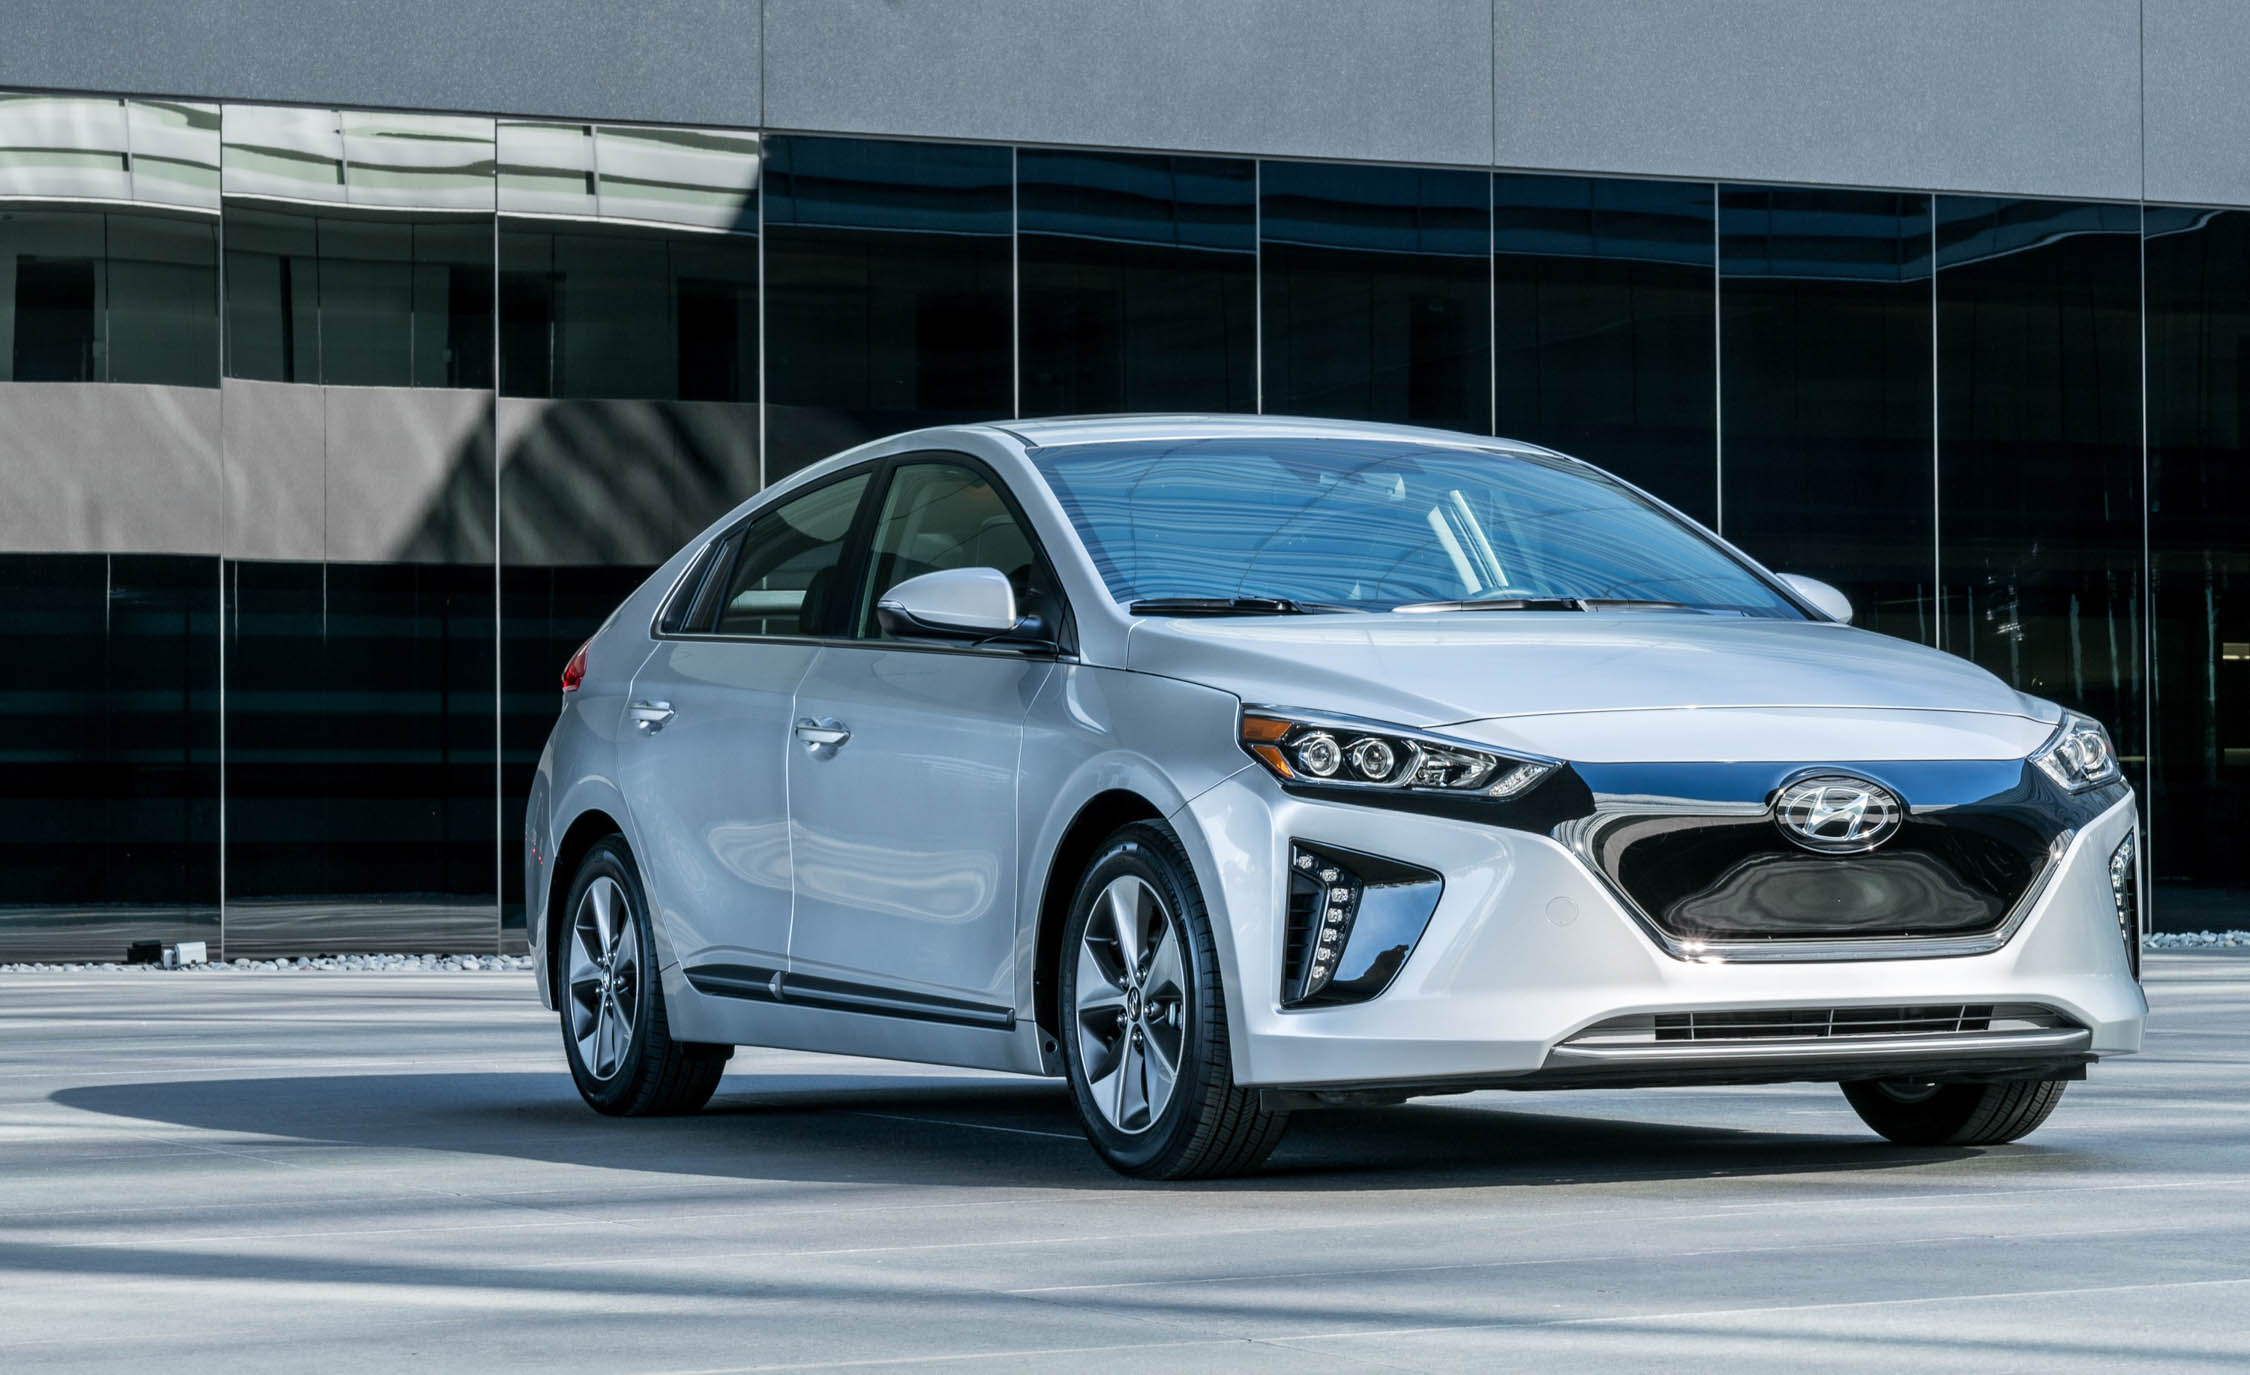 2017 Hyundai Ioniq Electric Exterior Front (Photo 3 of 67)